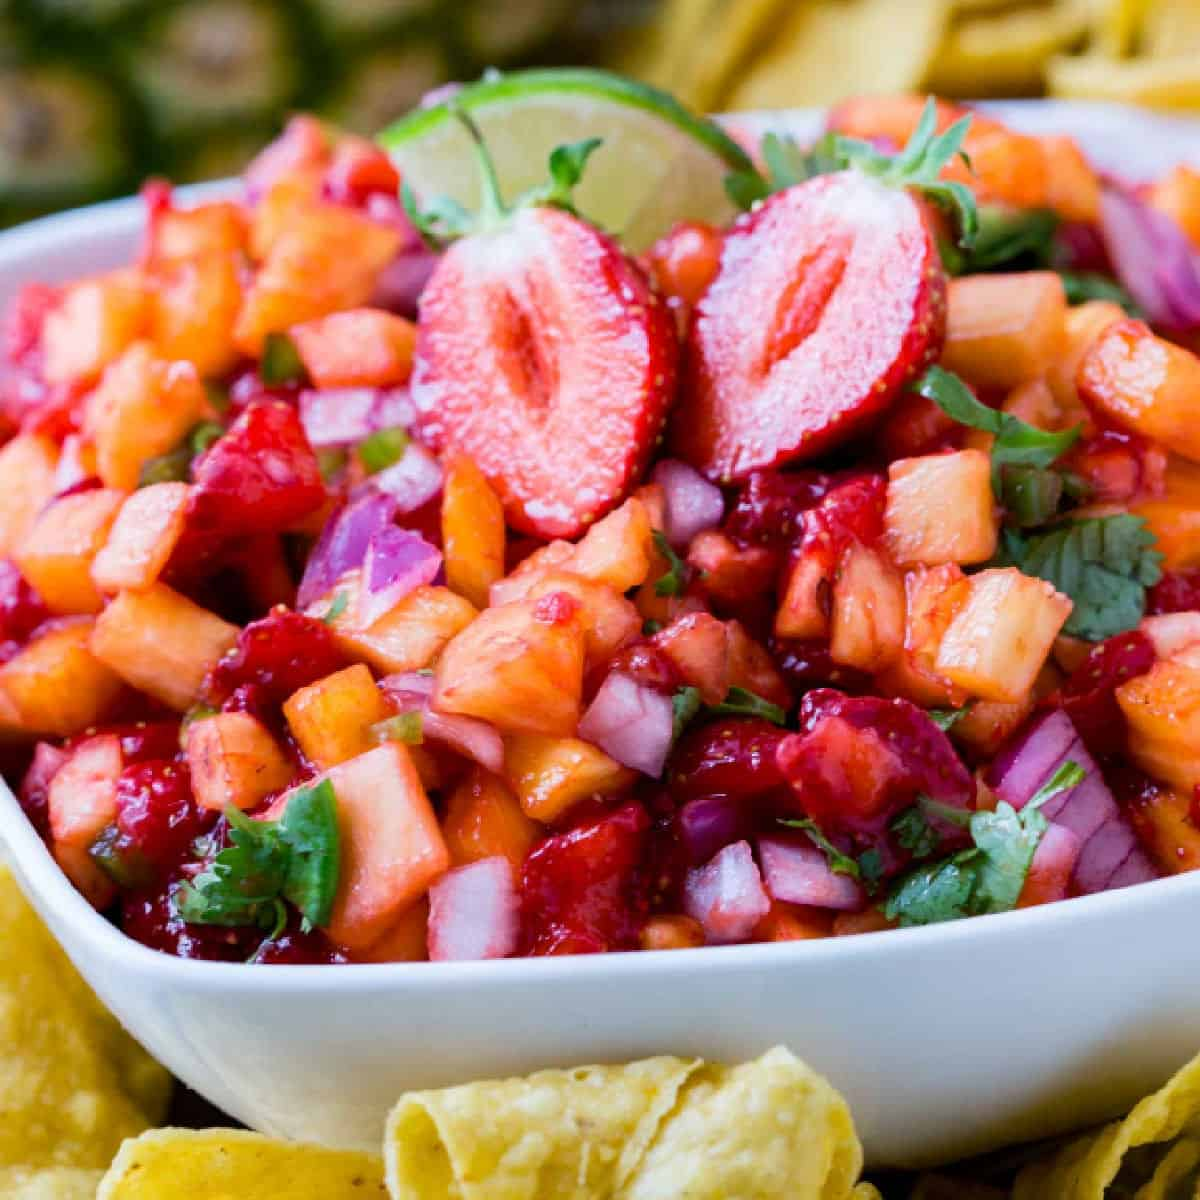 square close up image of strawberry pineapple salsa in a white bowl